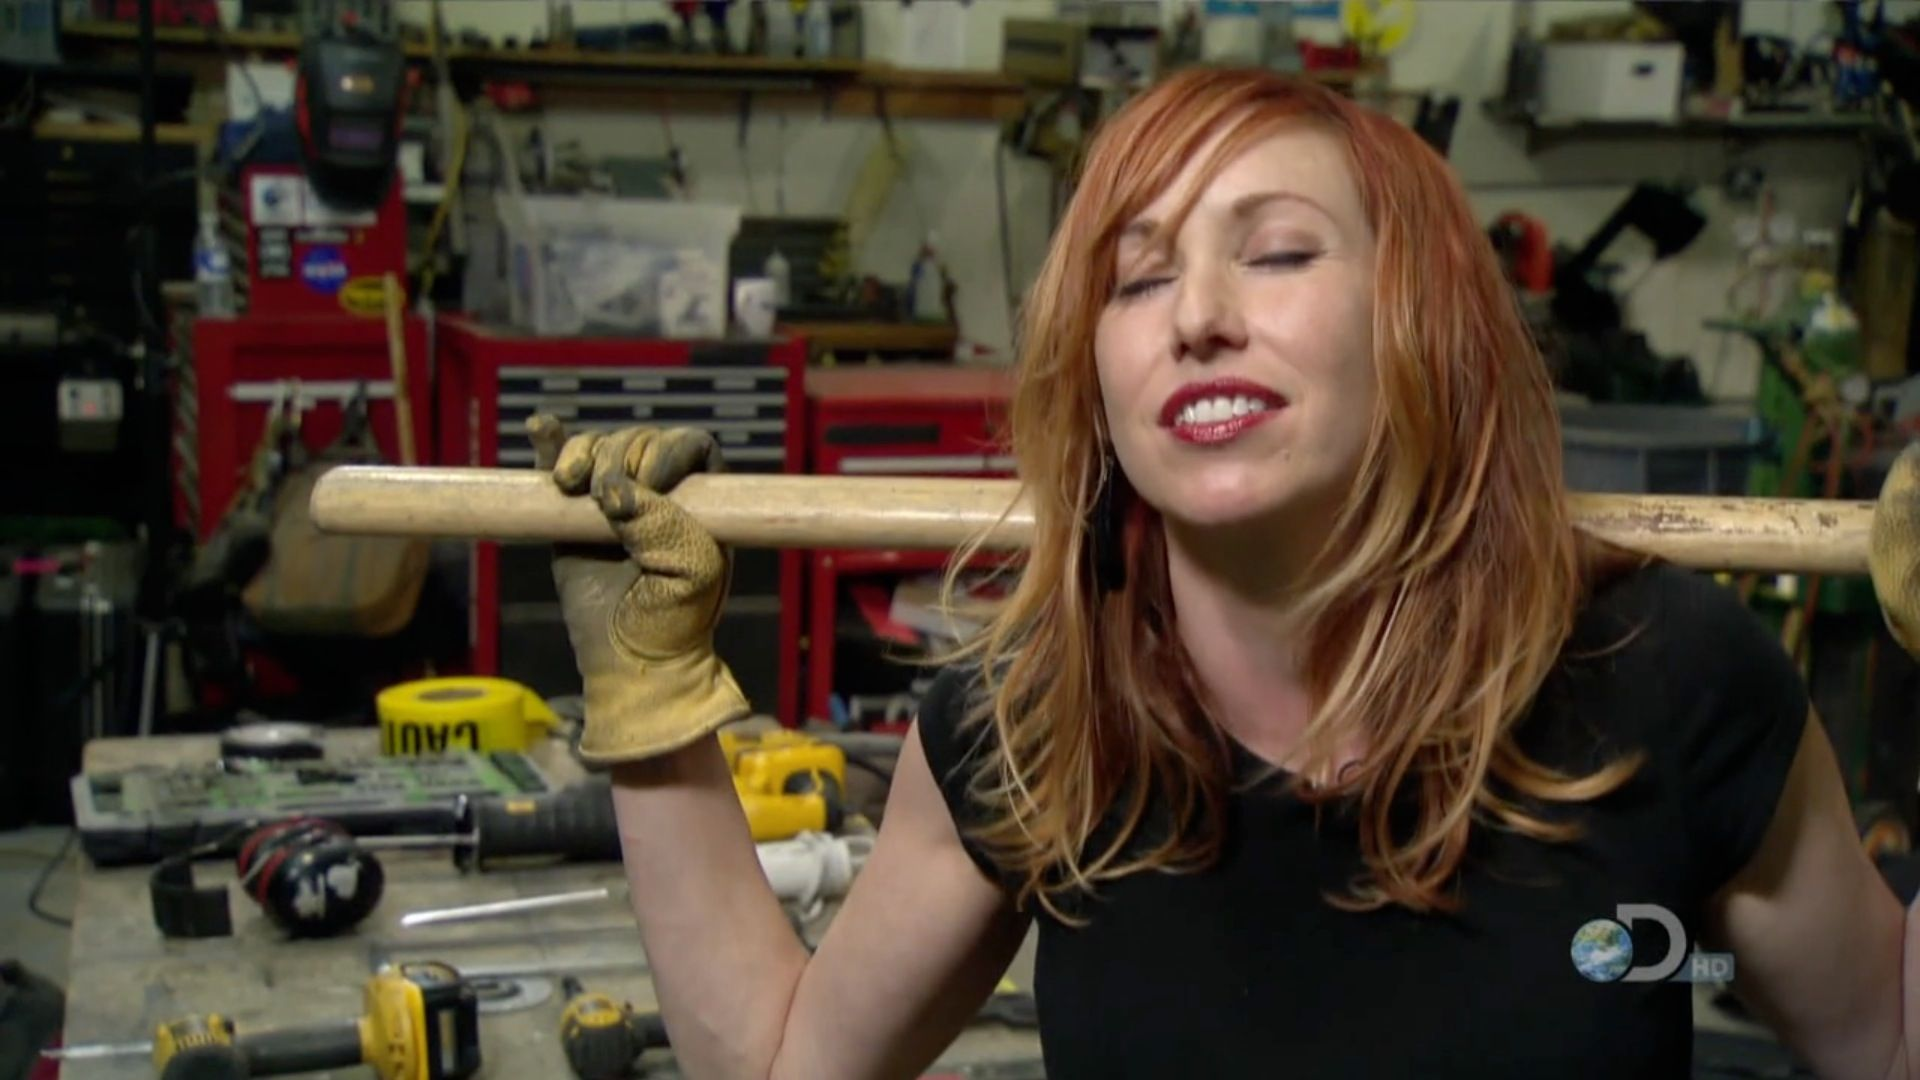 Hair style tori from mythbusters naked